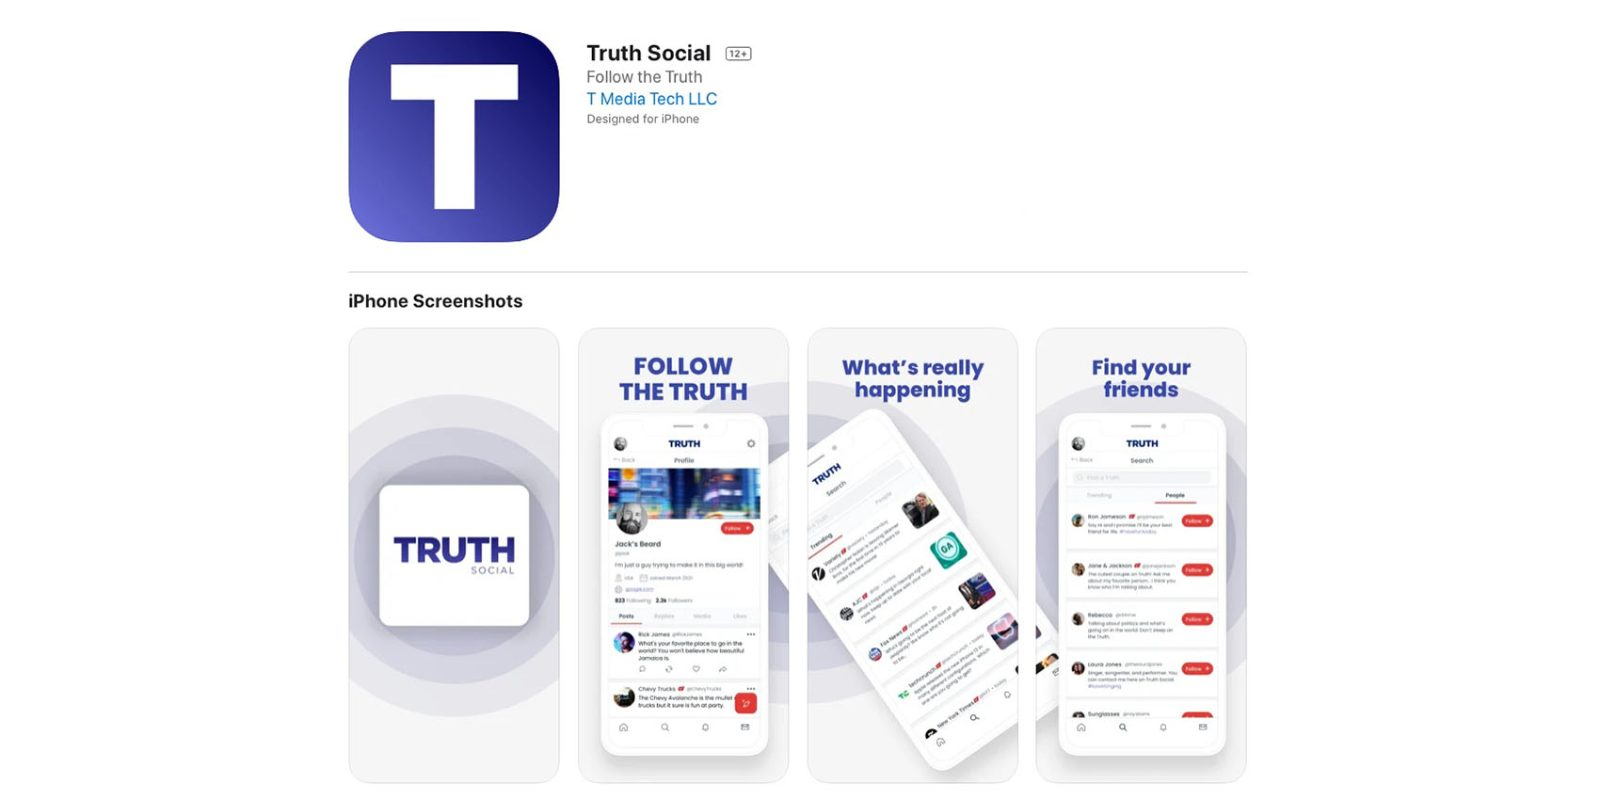 Trump announces Truth Social iOS app in belated response to Twitter ban